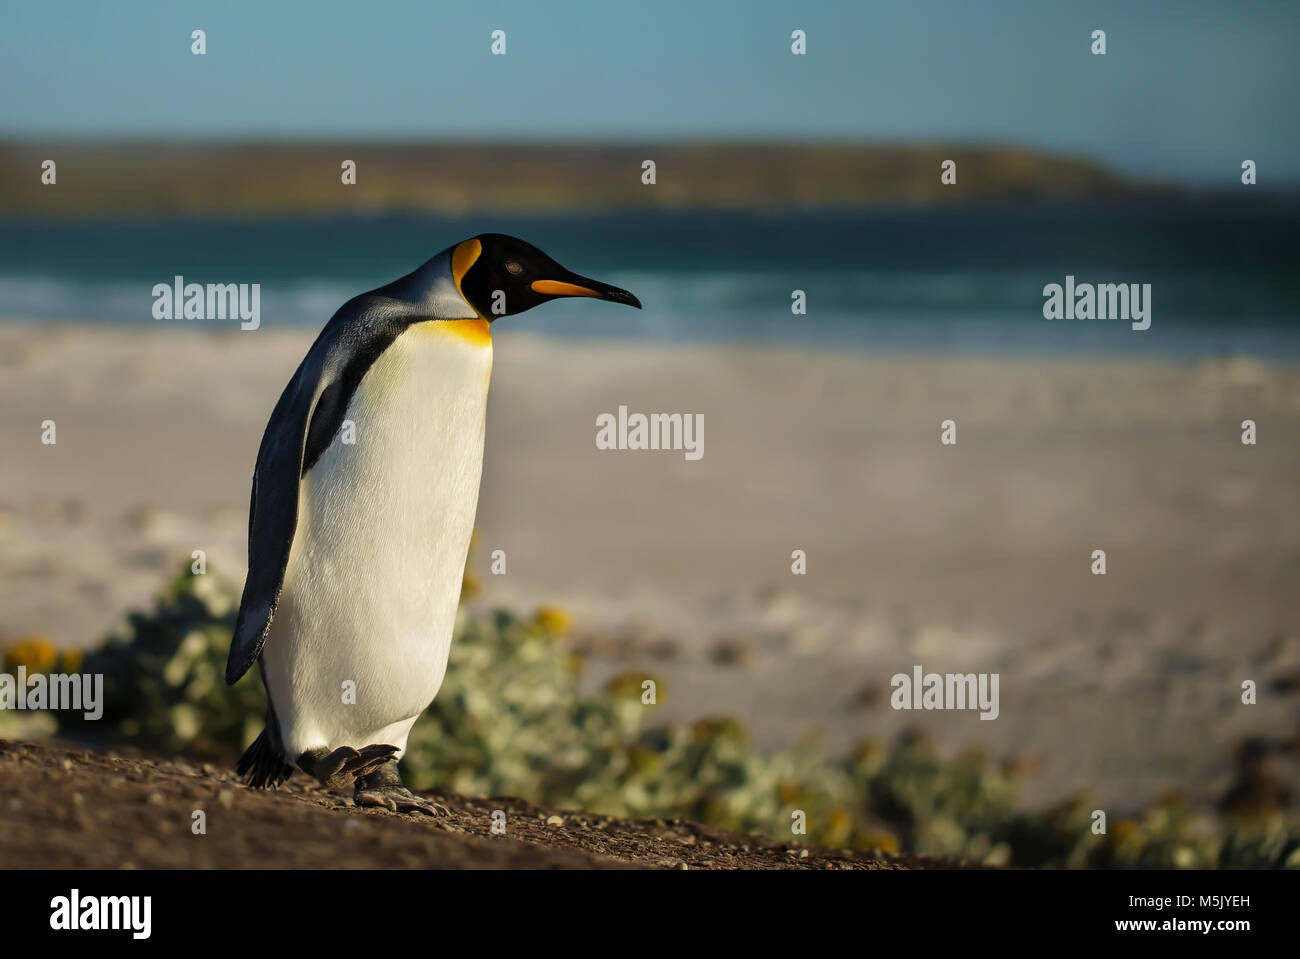 Close up of a King penguin walking on a sandy beach, summer in Falkland islands. - Stock Image